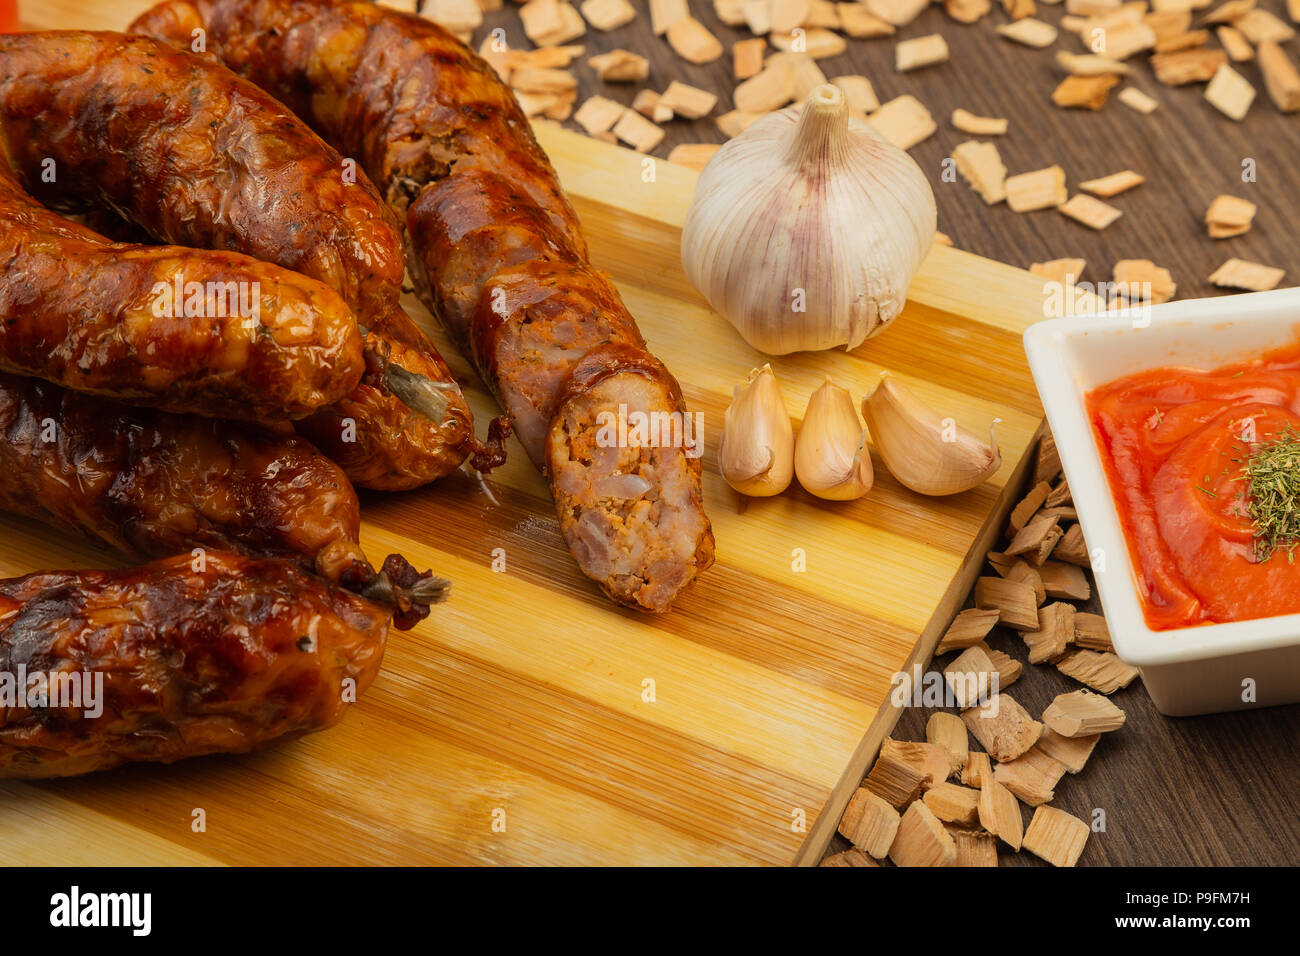 Homemade sausage on a wooden background with seasonings and sauce.